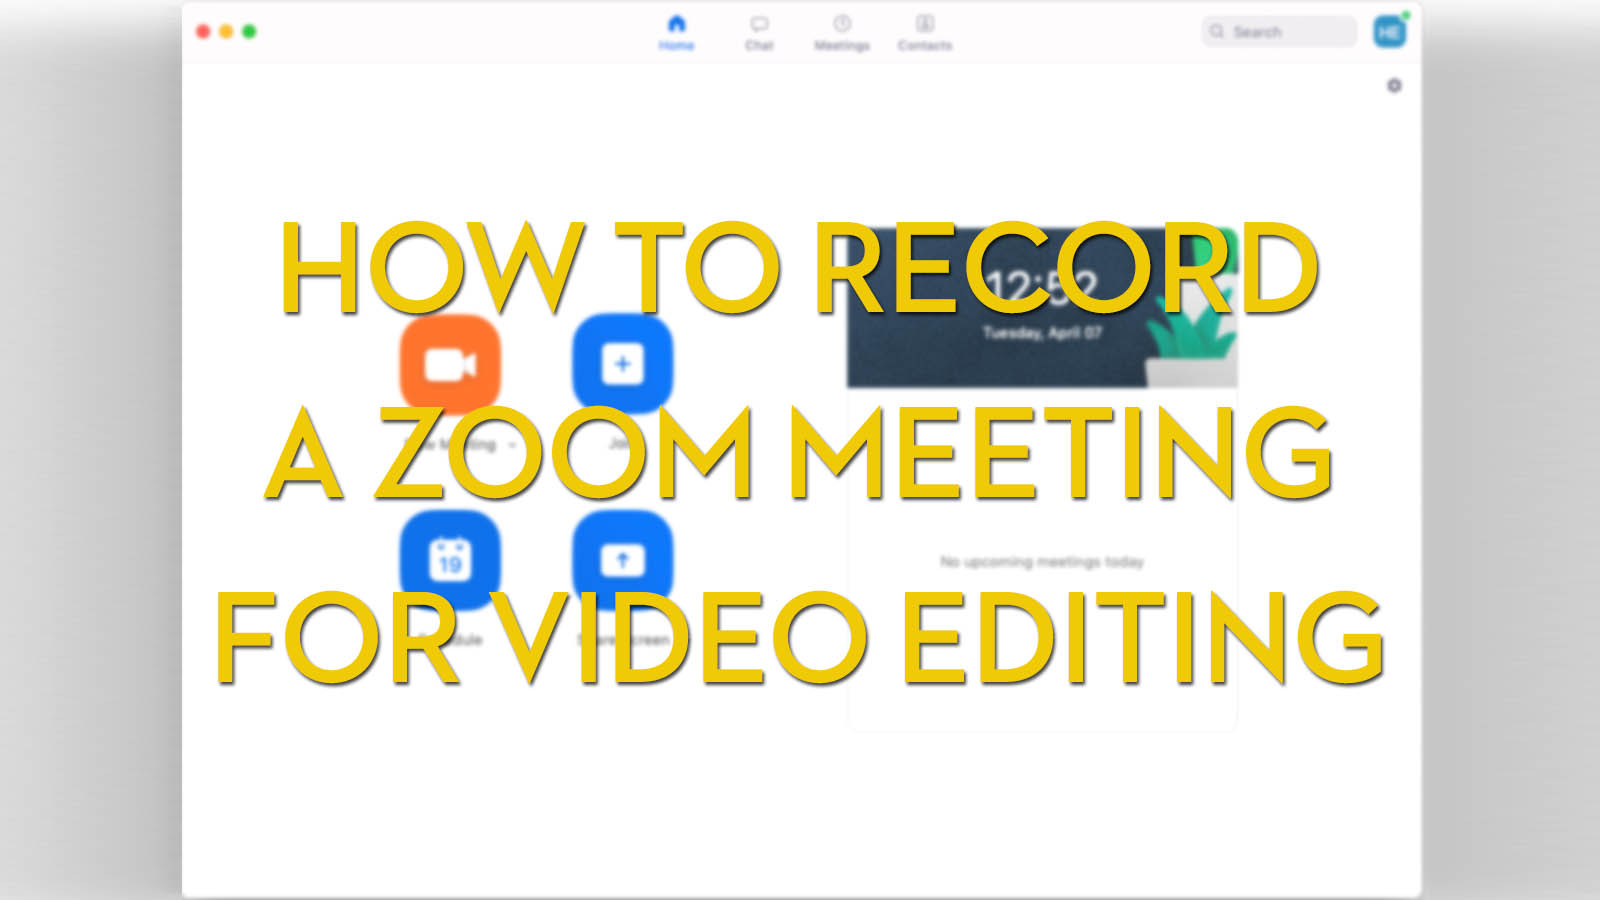 How To Record A Zoom Meeting In High Quality For Video Editing Jonny Elwyn Film Editor